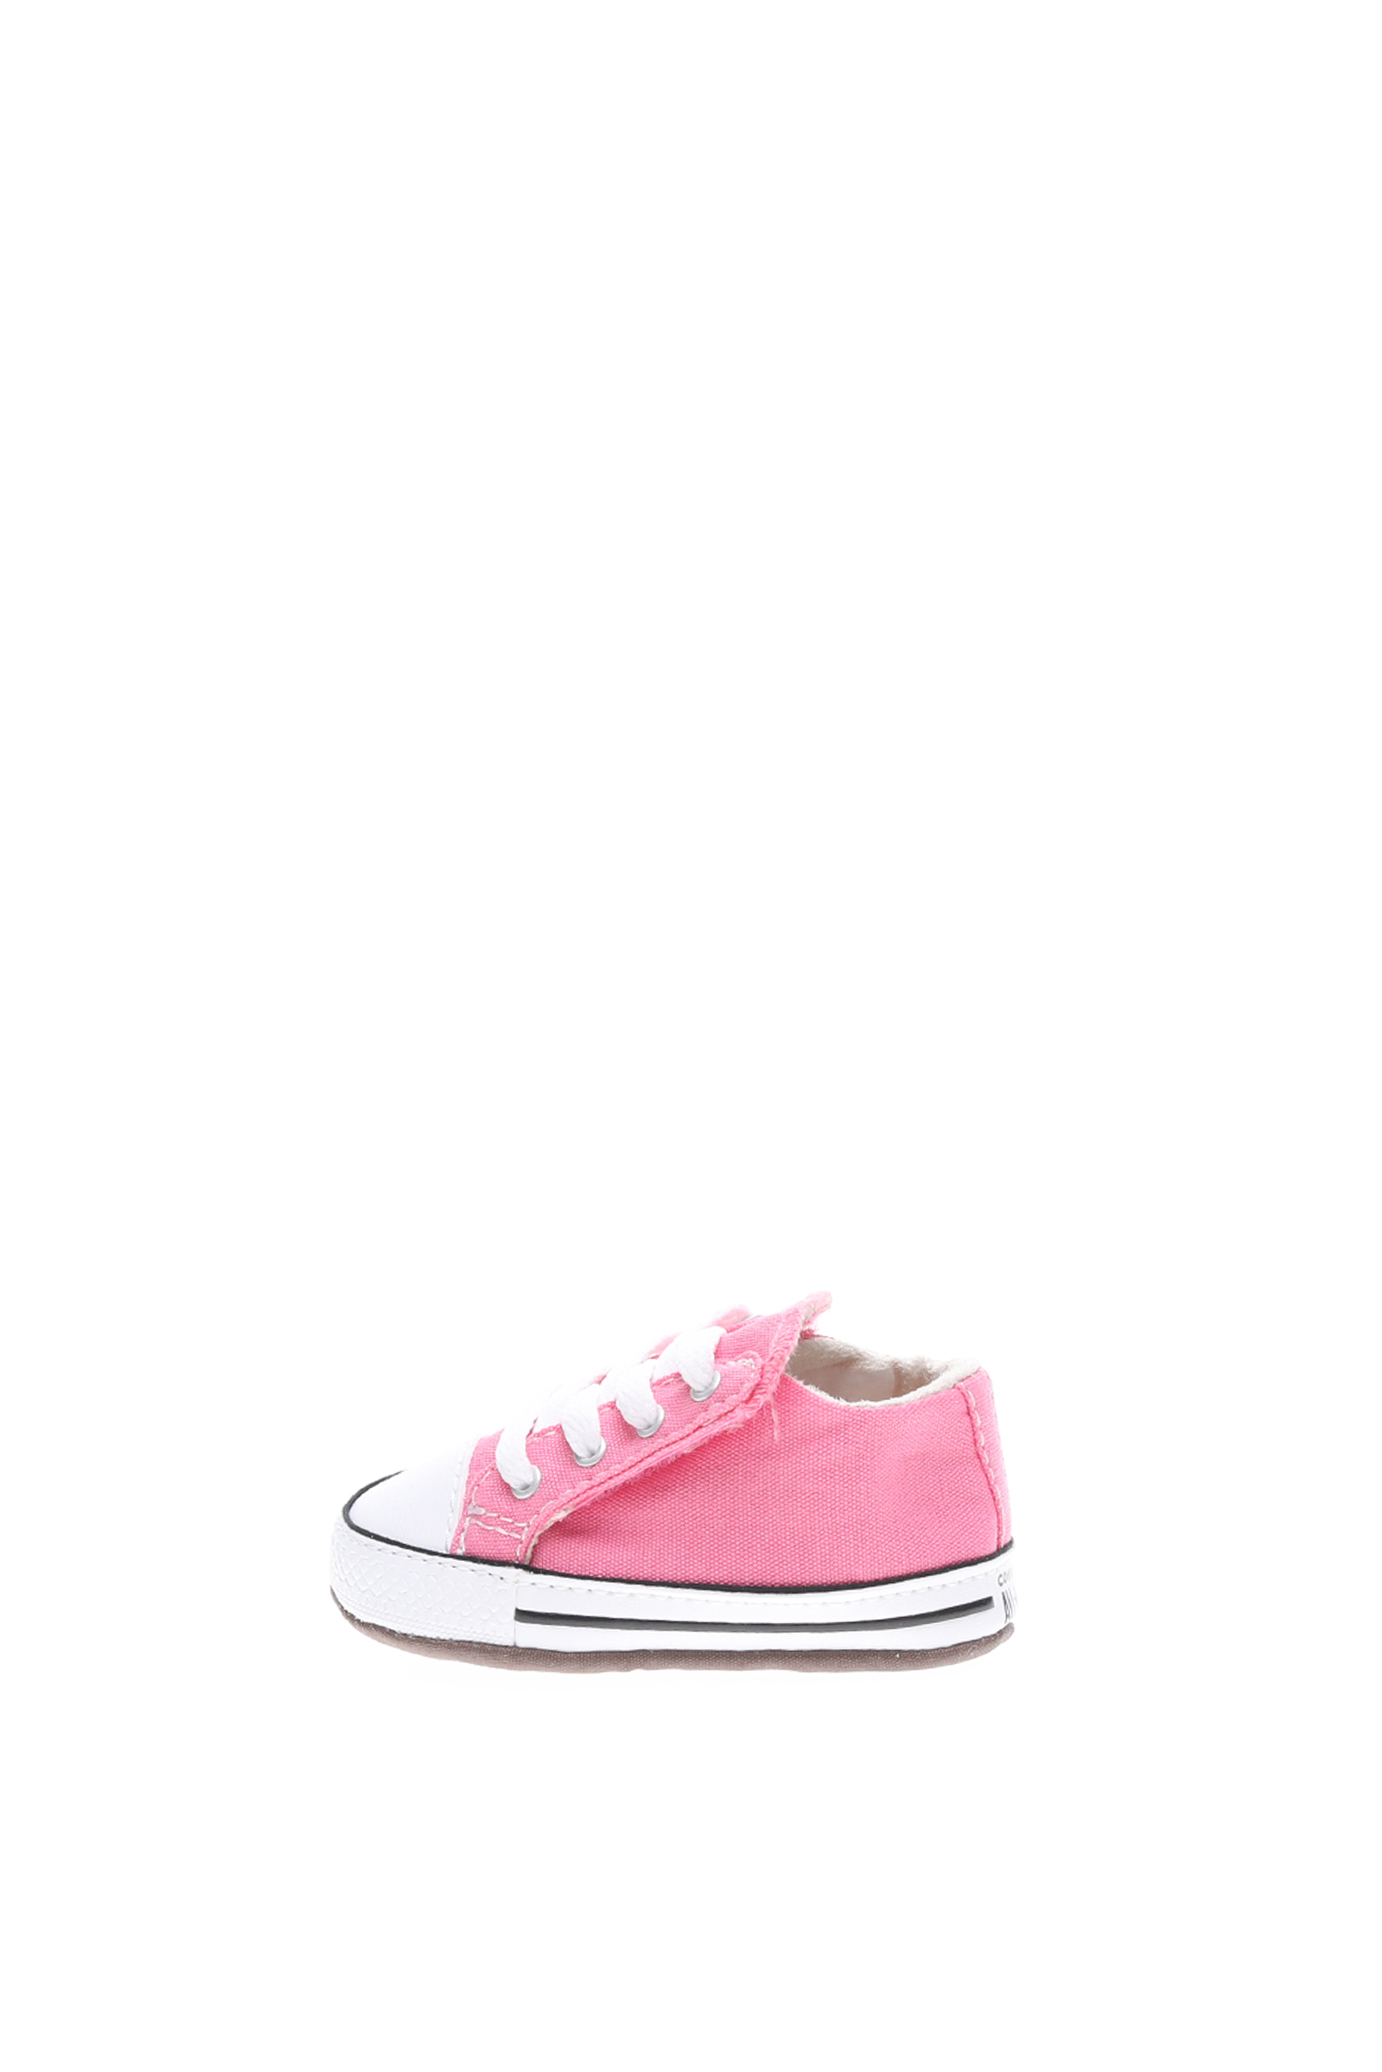 CONVERSE – Βρεφικά sneakers αγκαλιάς CONVERSE CHUCK TAYLOR ALL STAR CRIBSTER ροζ